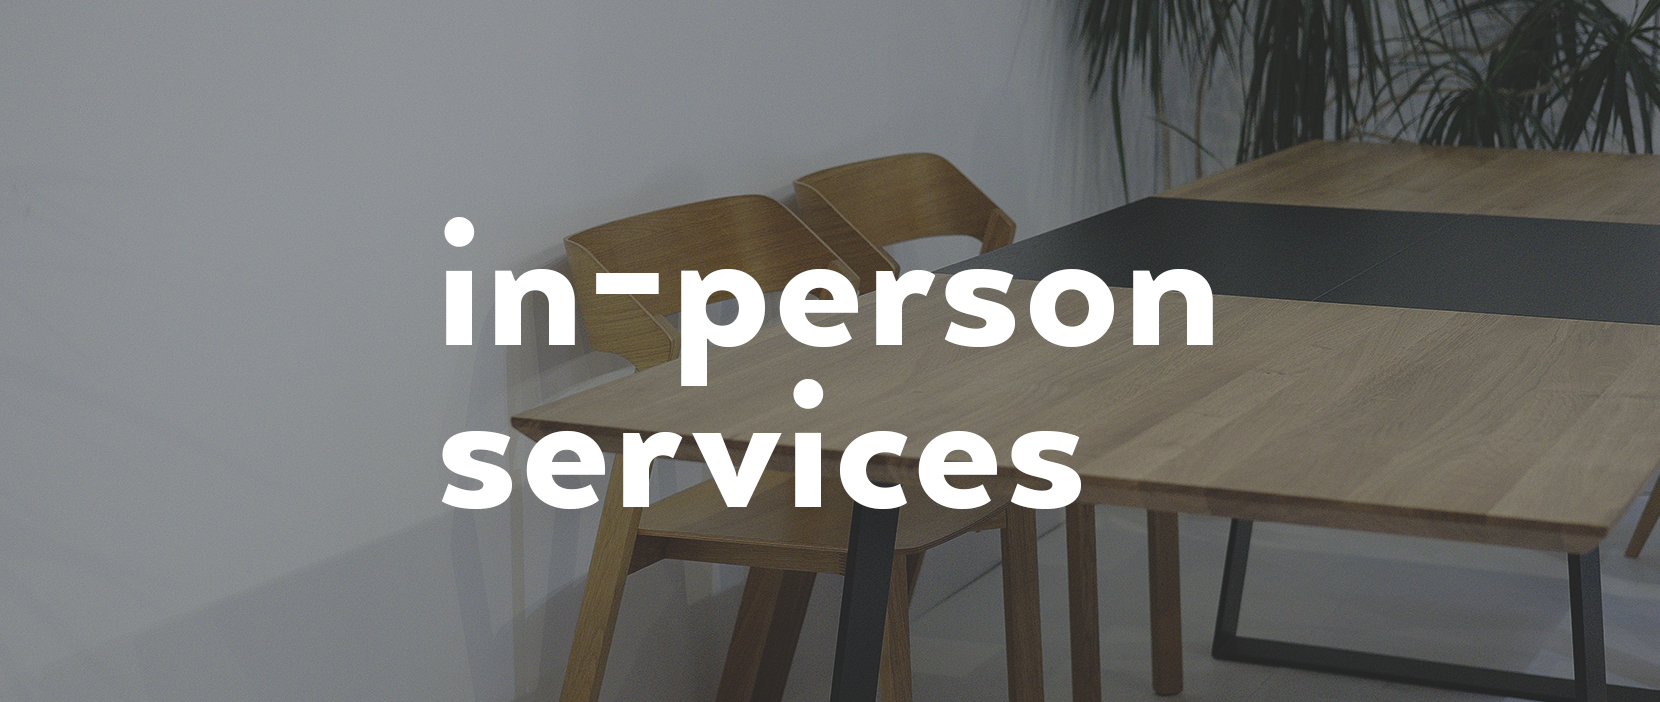 Main image for In-Person Services